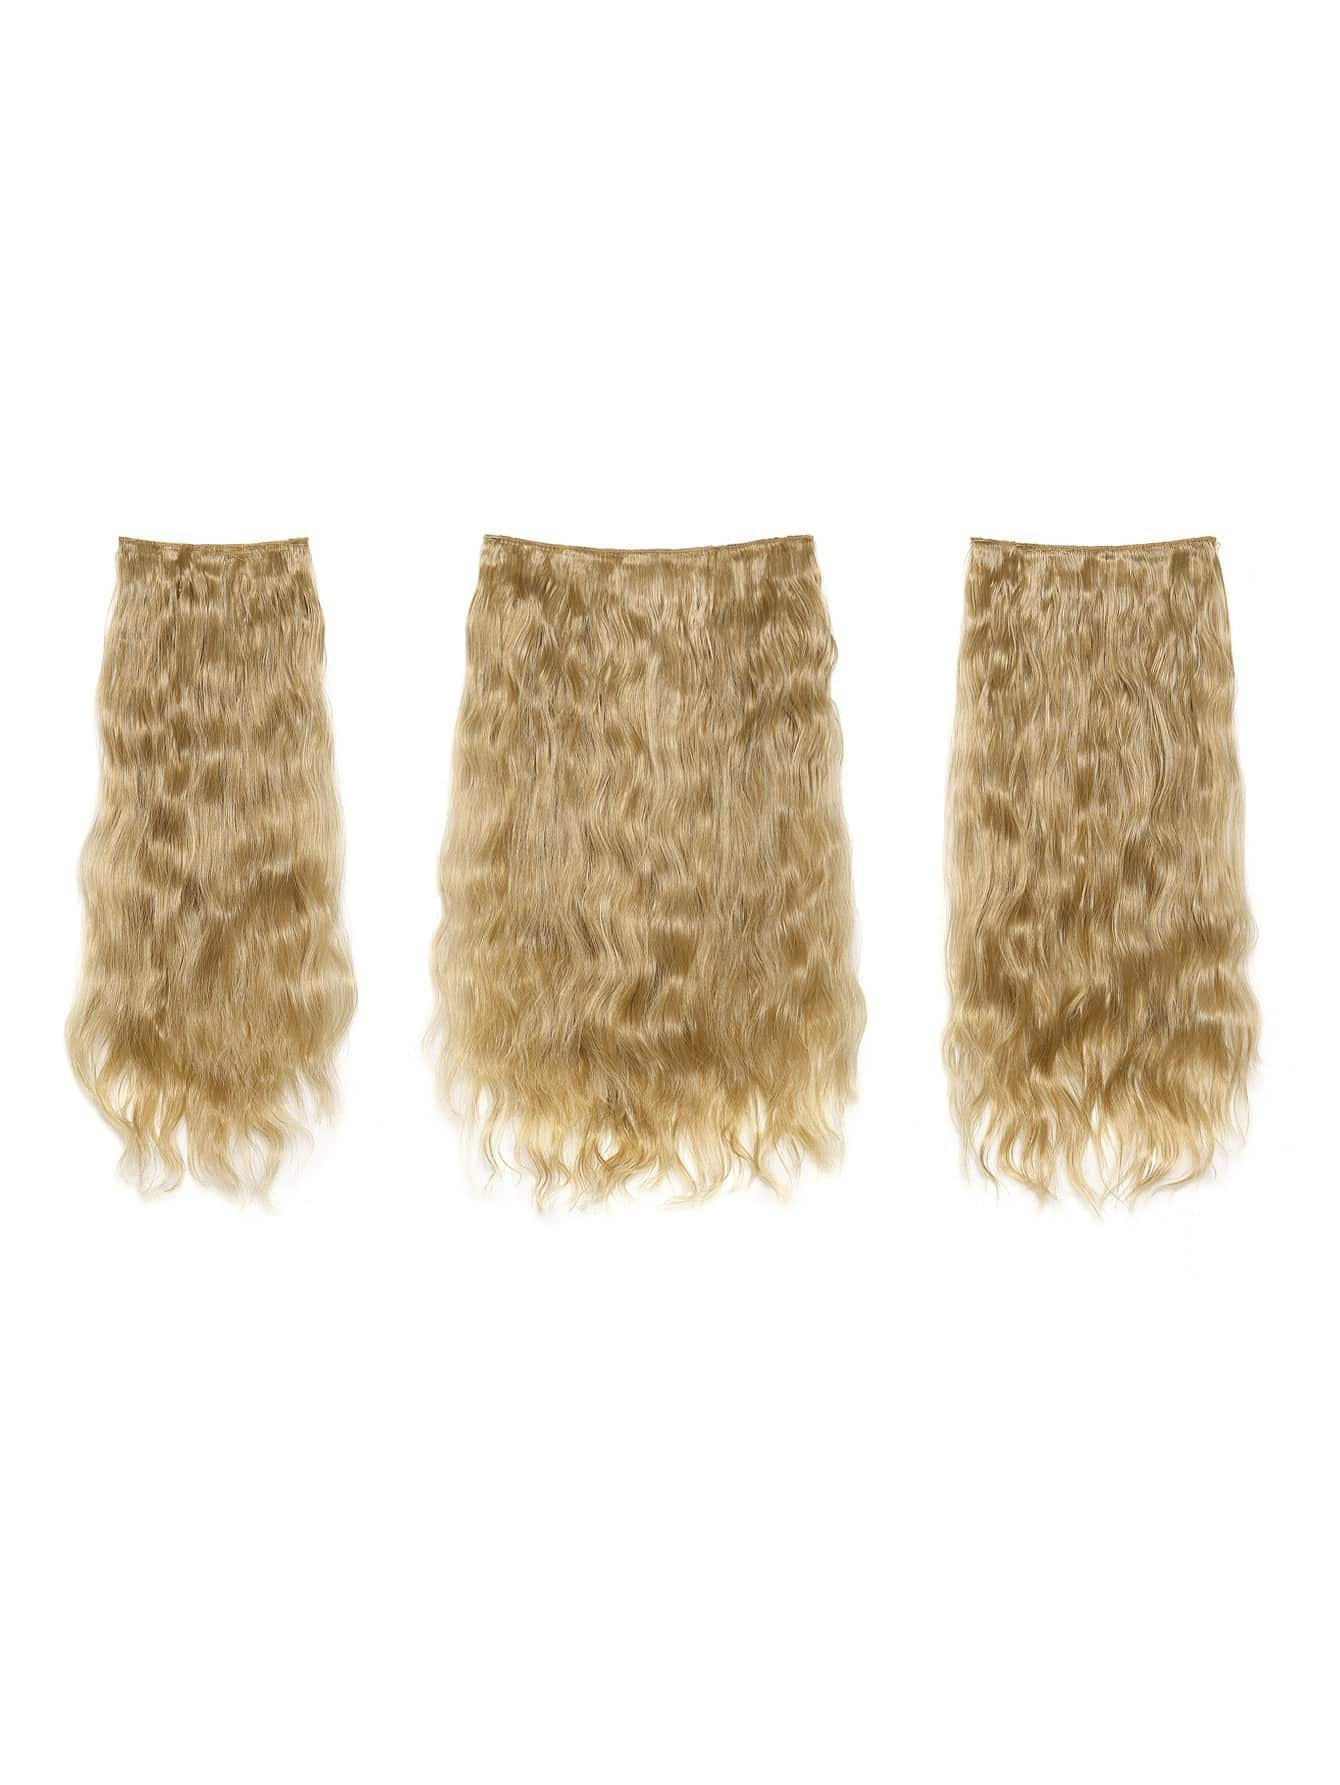 Honey Blonde Clip In Curly Hair Extension 3pcs